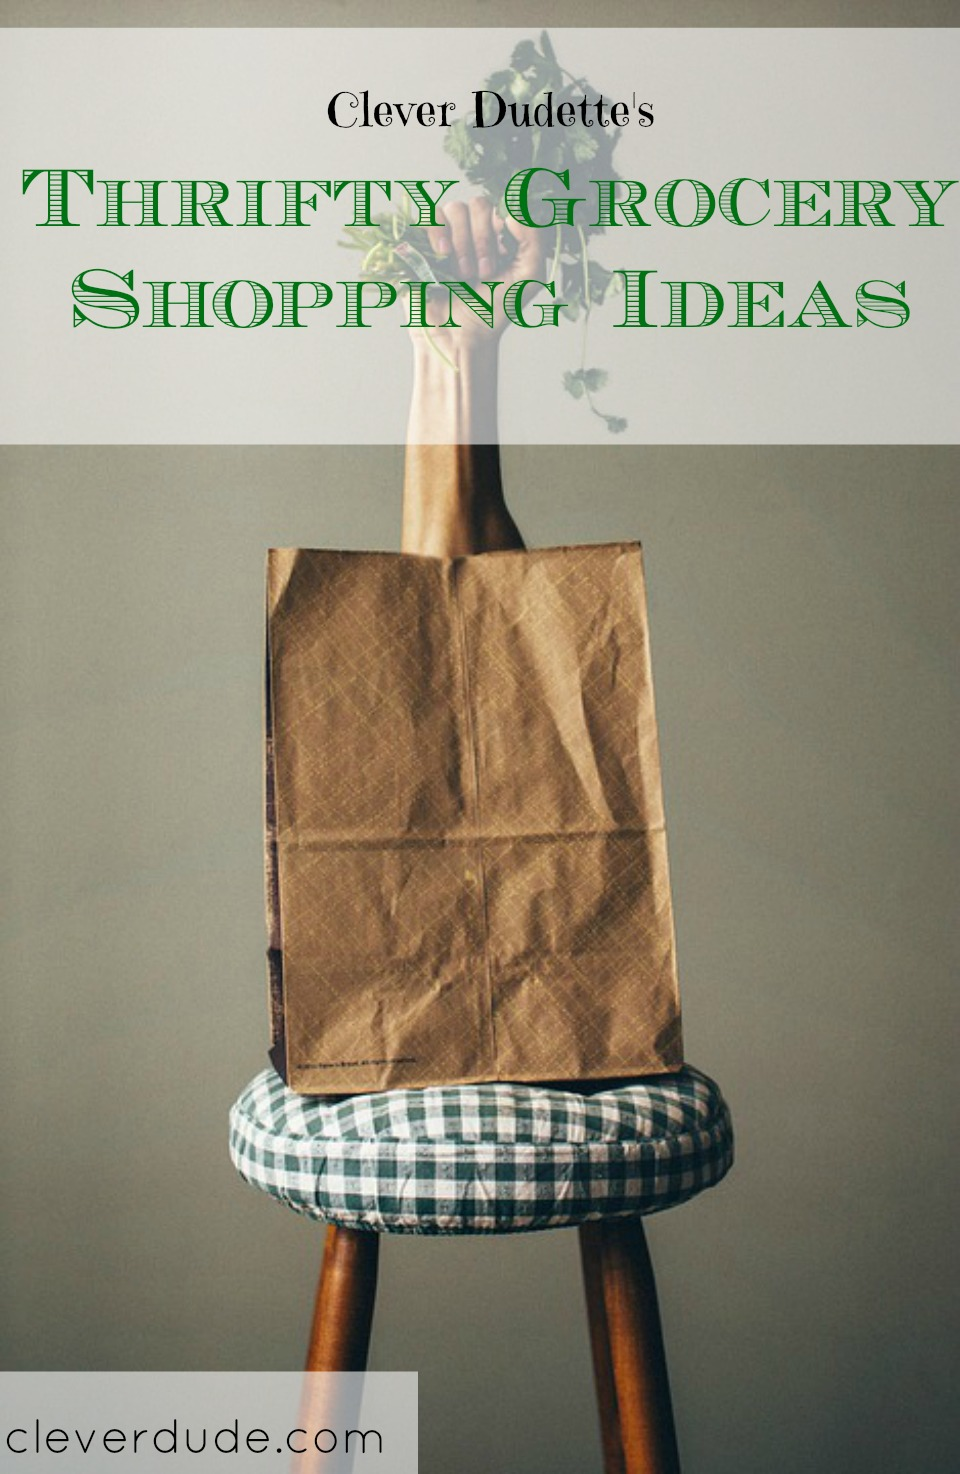 thrifty grocery ideas, grocery shopping tips, frugal groceries